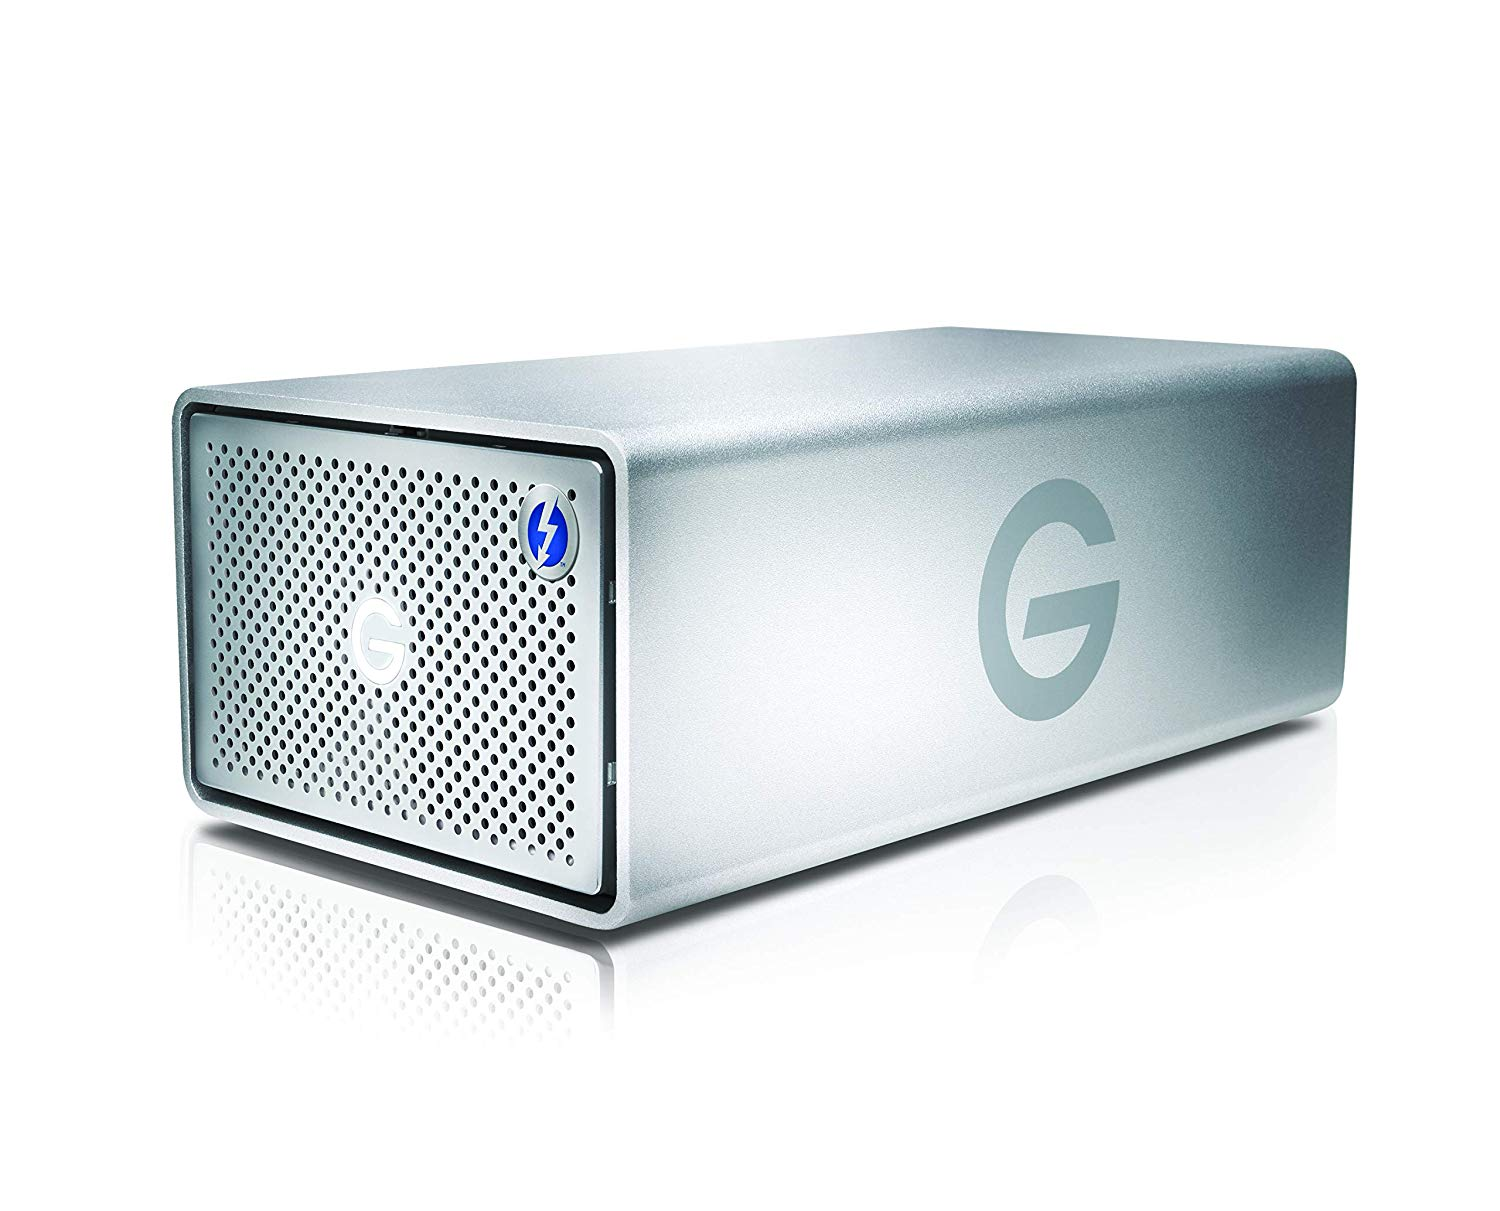 g_raid_removable_thunderbolt